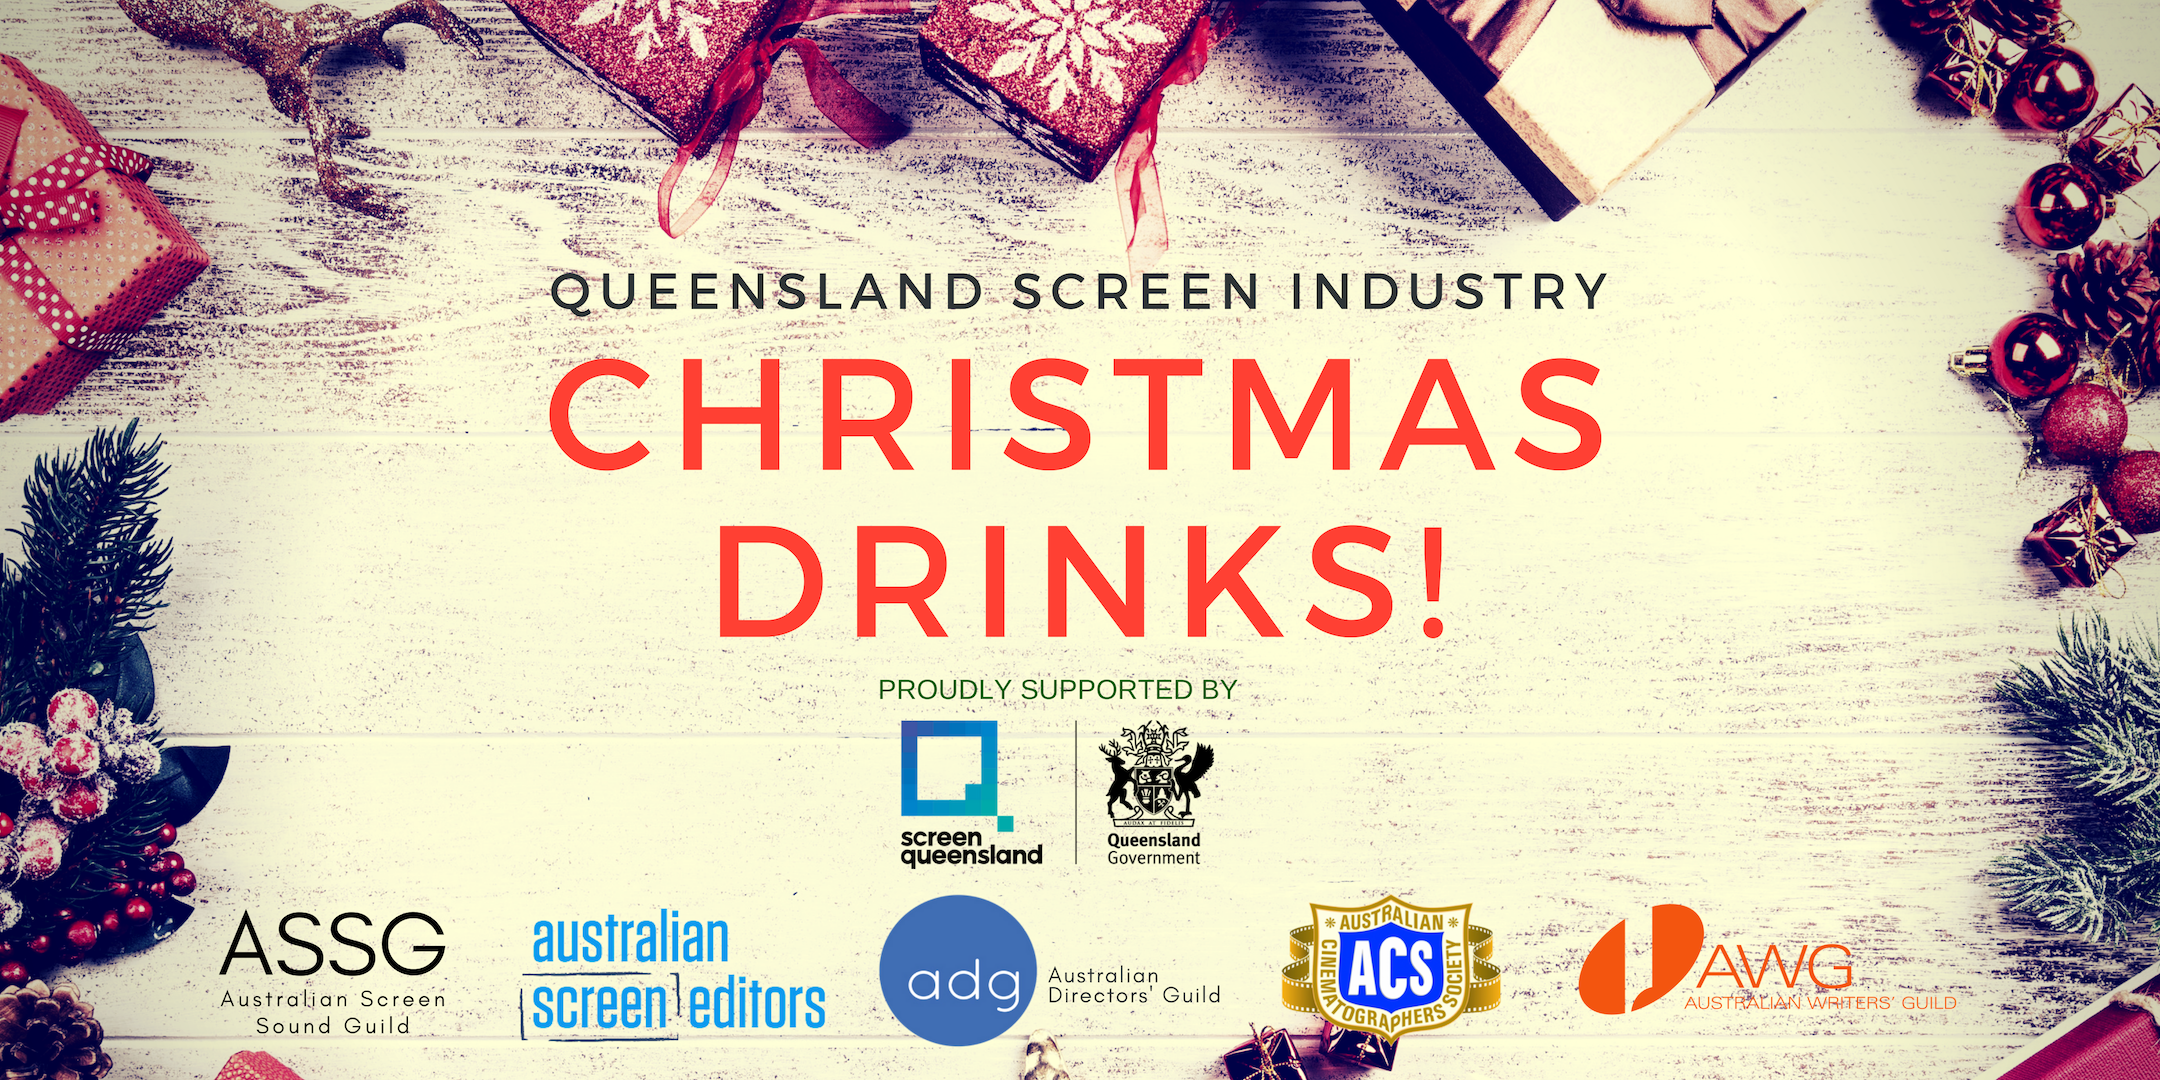 QLD Screen Industry Christmas Drinks Header Image